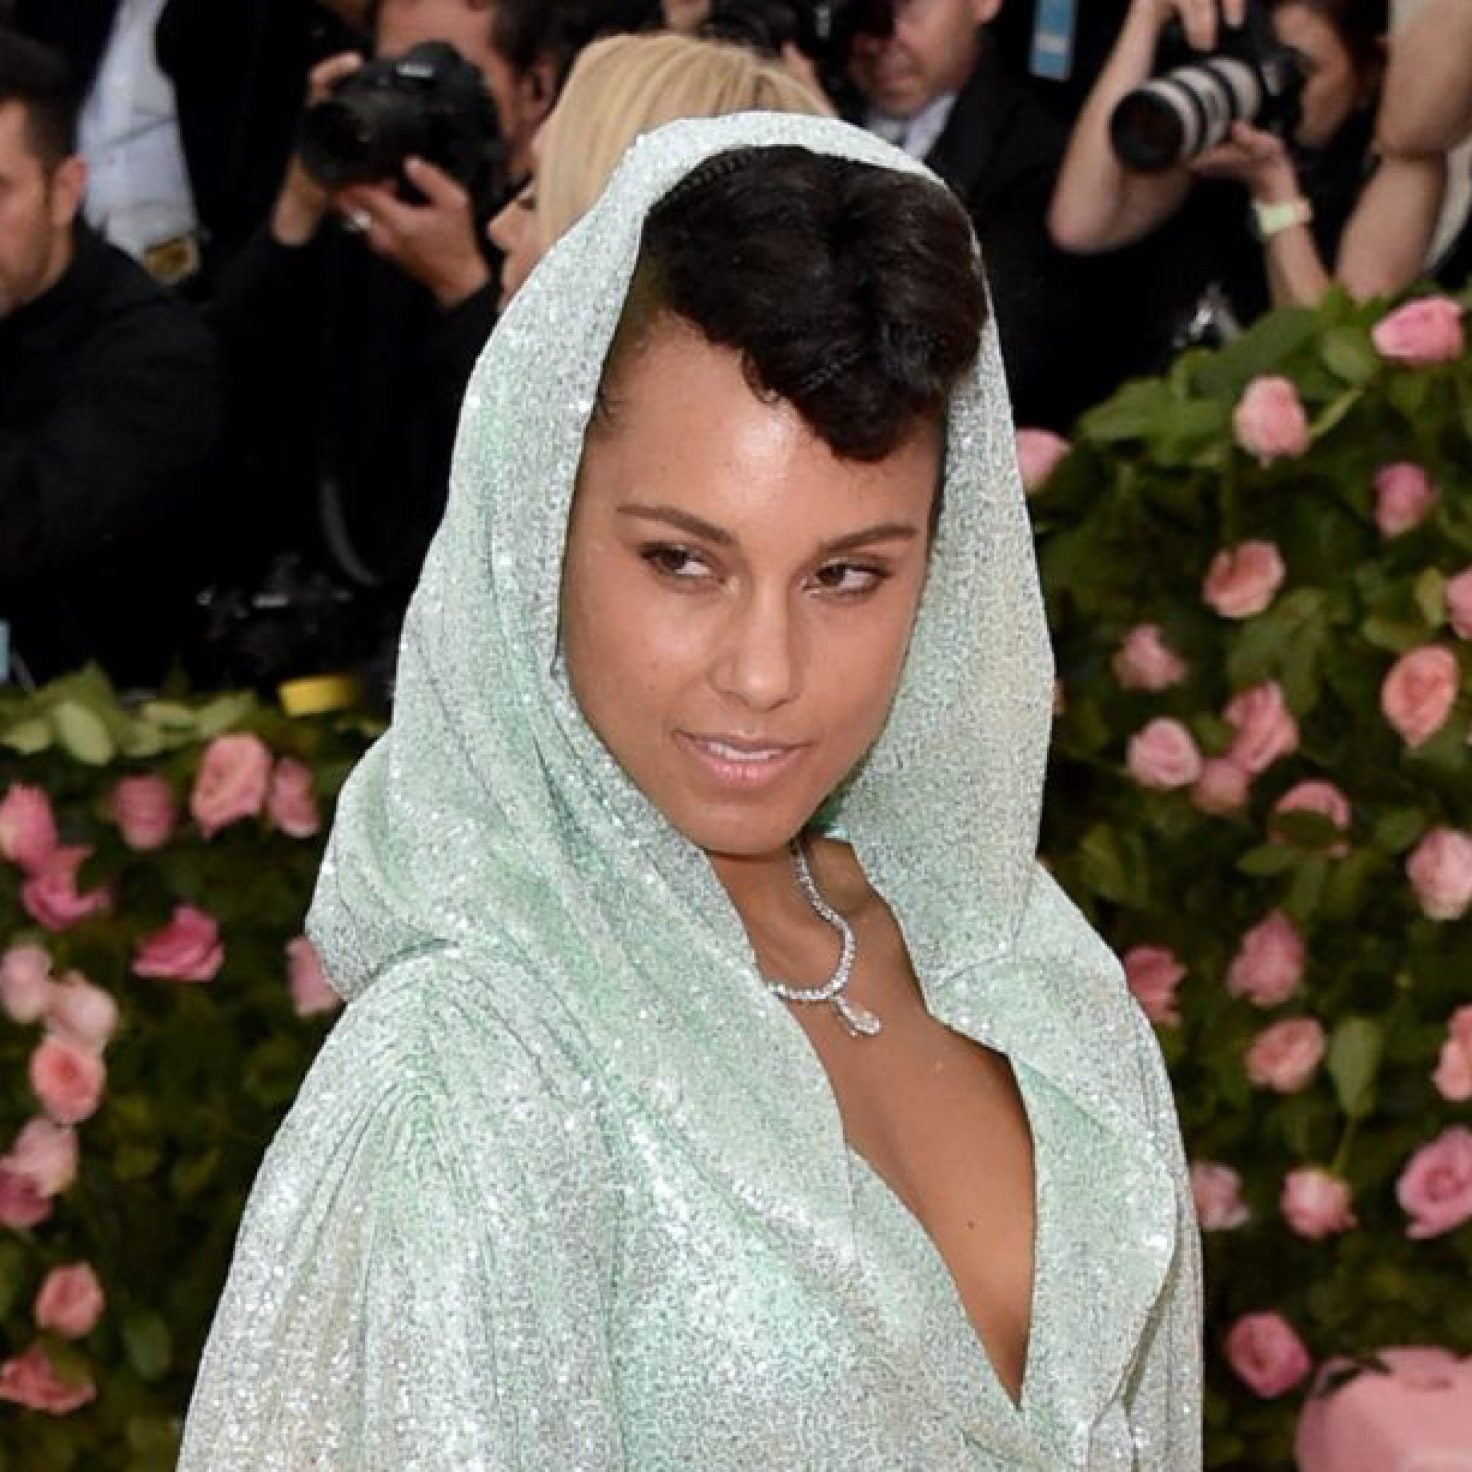 Here's Every Single Outfit Alicia Keys Wore While Hosting The Grammys